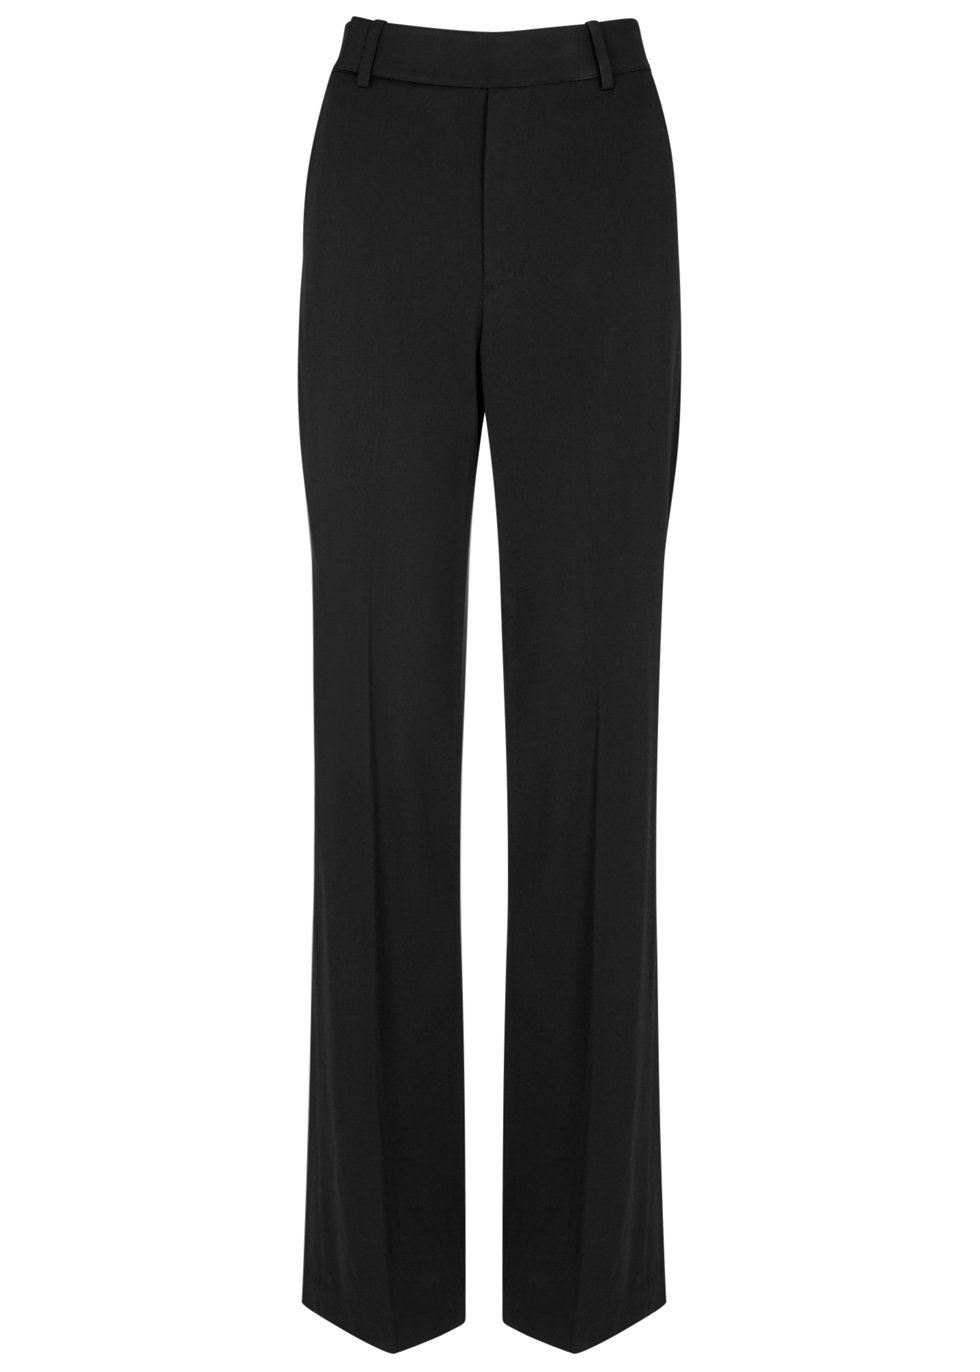 Black Wide Leg Crepe Trousers - length: standard; pattern: plain; waist: mid/regular rise; predominant colour: black; occasions: work; fibres: viscose/rayon - stretch; fit: wide leg; pattern type: fabric; texture group: woven light midweight; style: standard; pattern size: standard (bottom); wardrobe: basic; season: a/w 2016